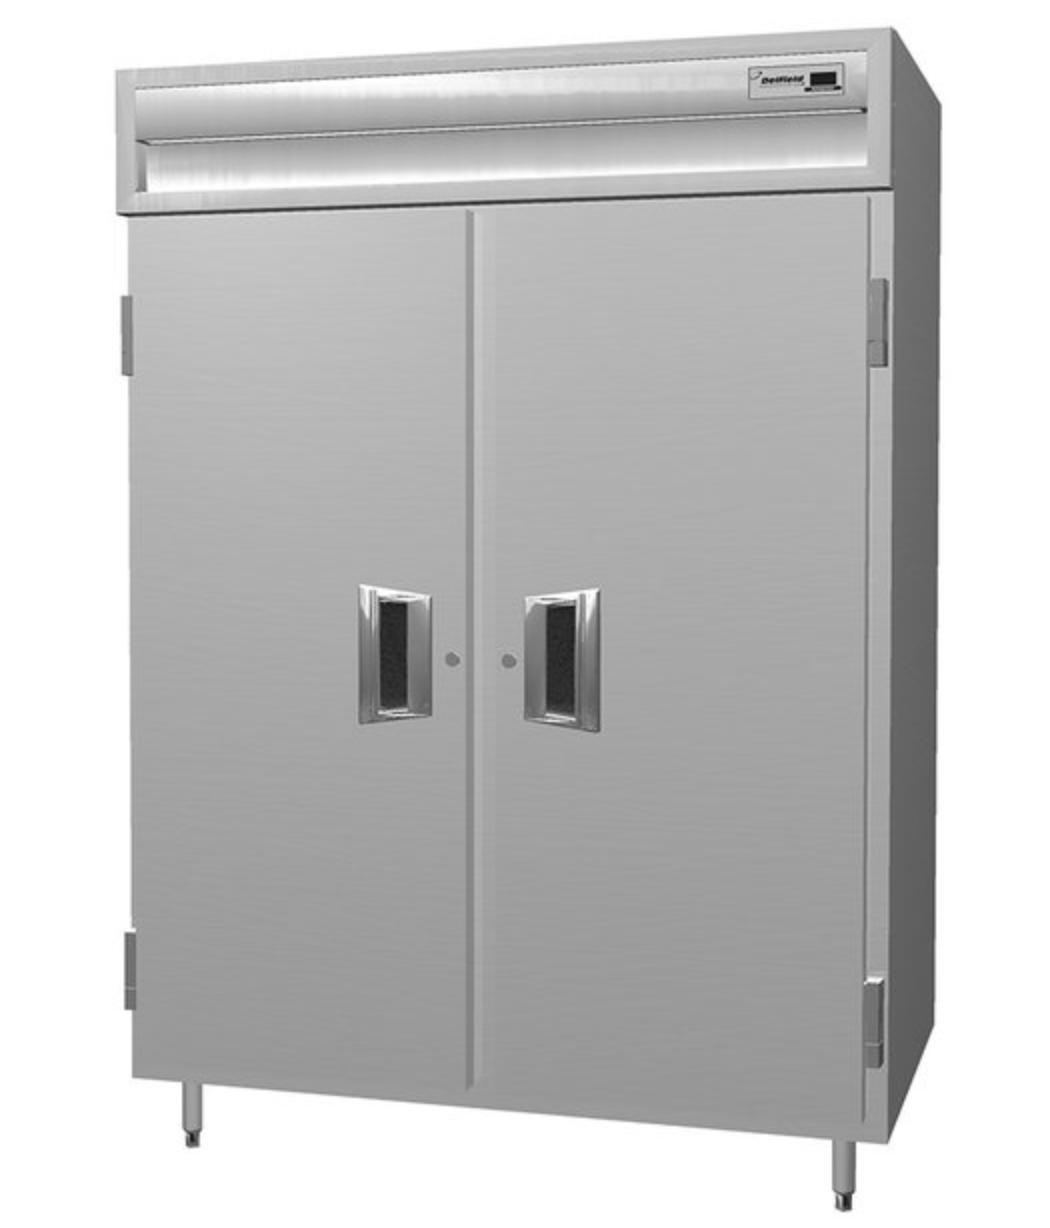 Delfield SSR2-S Two Section Refrigerator